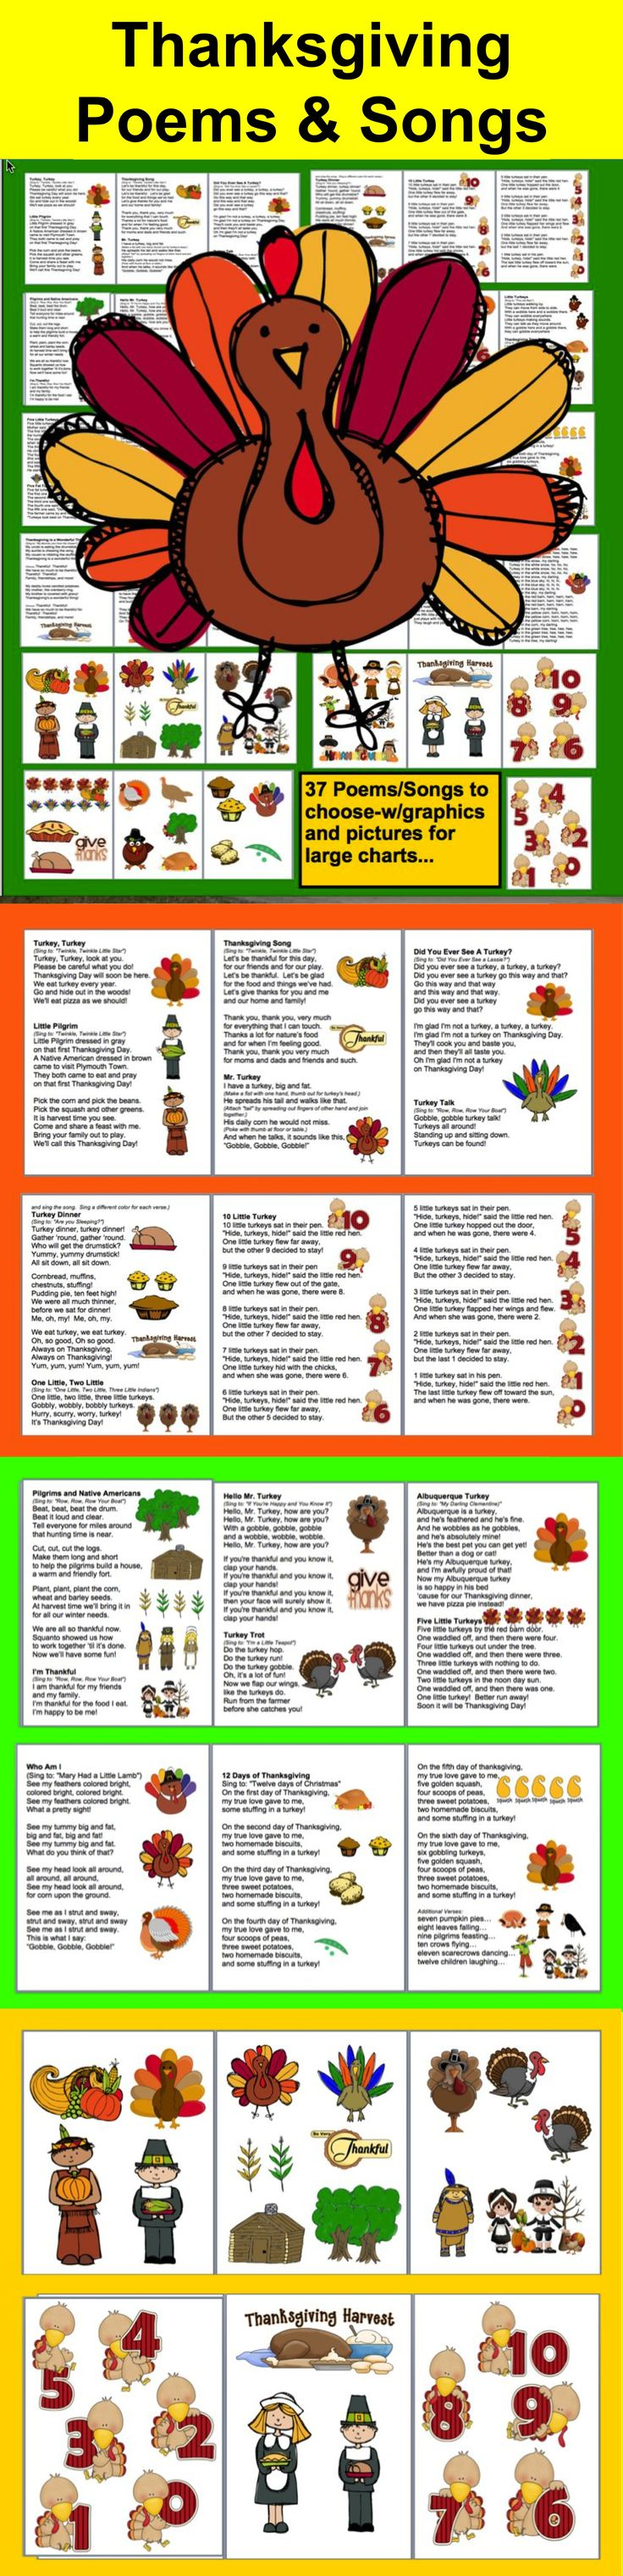 $3.25 Thanksgiving Poems/Songs/Finger Plays and Chants – Shared Reading and Fluency - 36 page file –  All Illustrated with Thanksgiving Graphics- Songs/Poems/Finger Plays and Chants- Prints nicely in color or grayscale- Just choose those you like, and print just those pages.  10 pages of large Thanksgiving images to cut out and  glue onto shared reading charts. Print in color or grayscale.  Sing to familiar tunes, or chant.  Use some or all year after year.